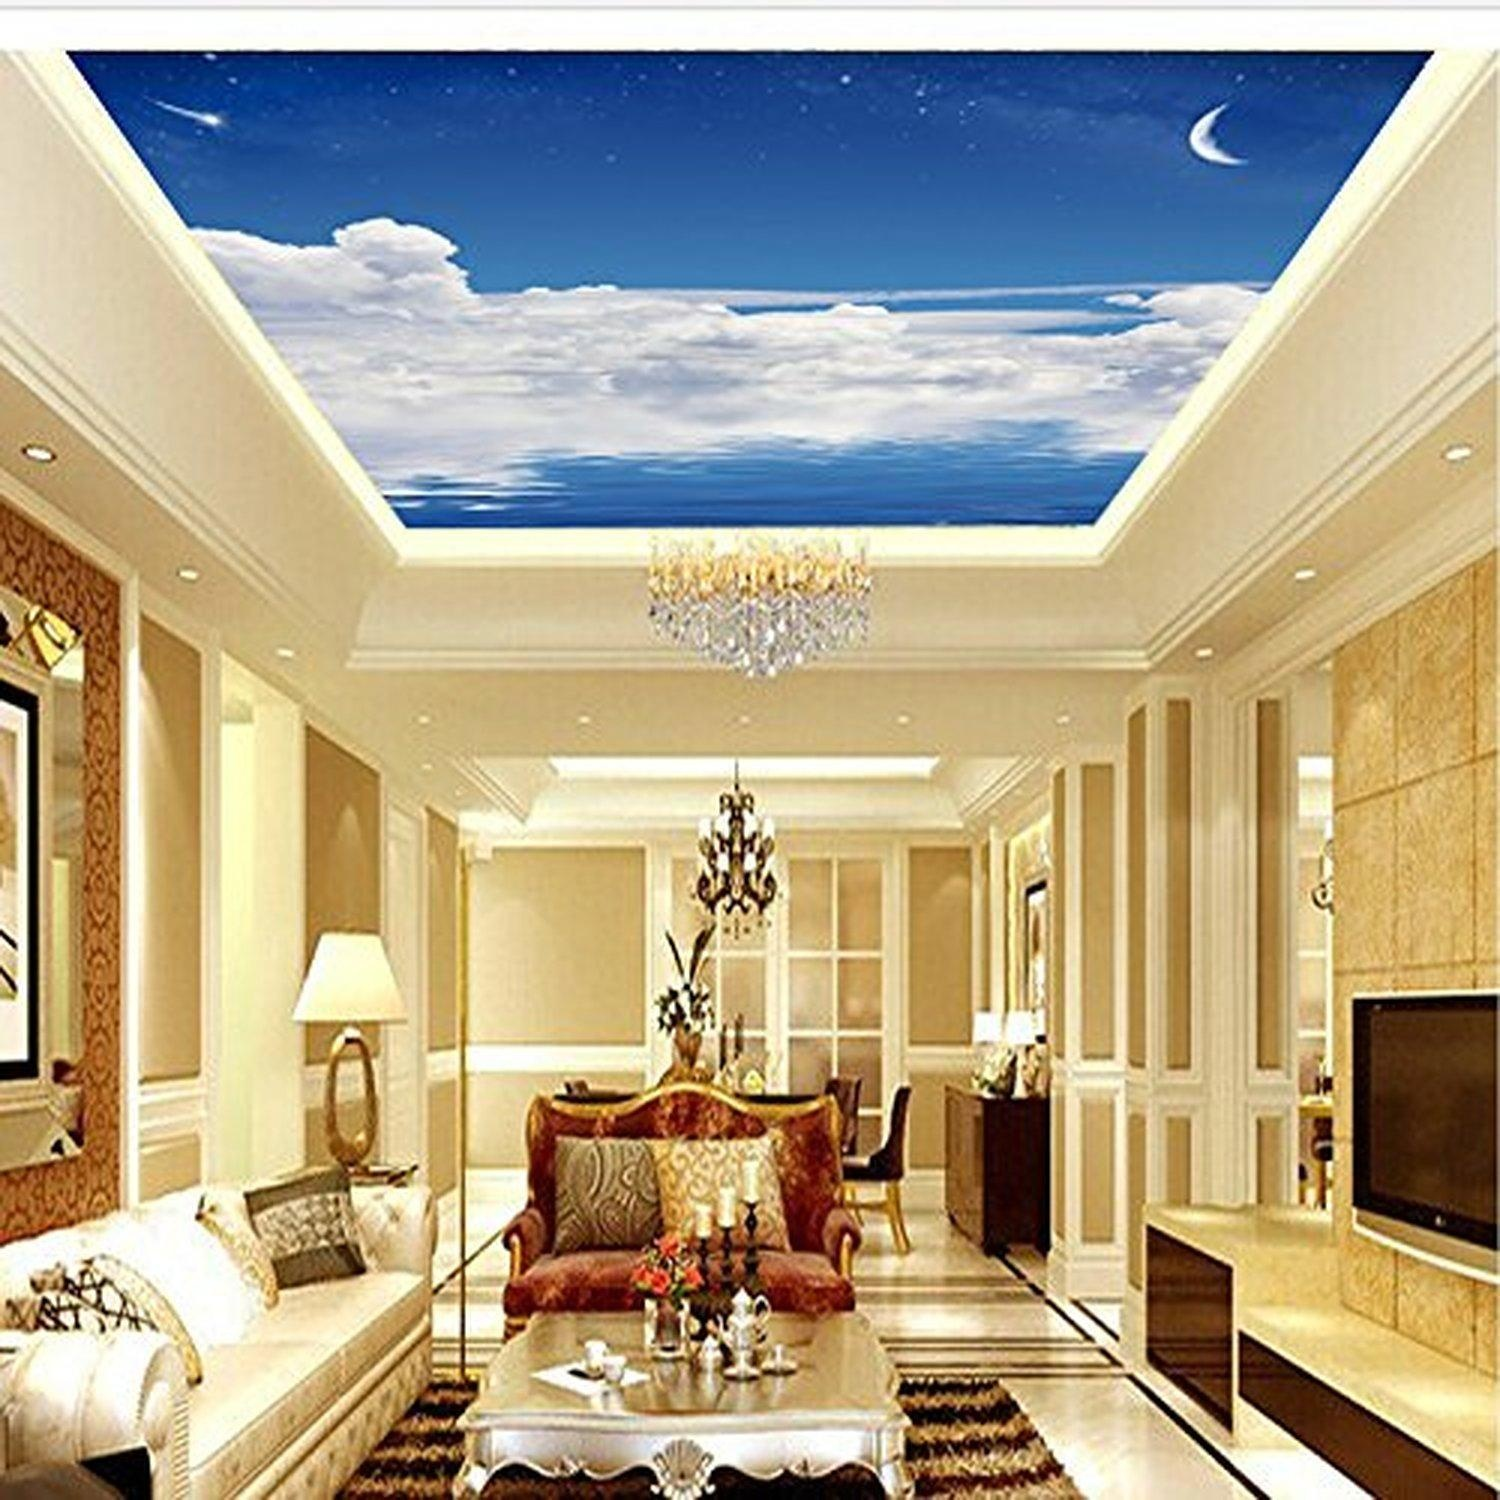 FEI&S Seamless roof 3D wallpaper blue sky ceiling murals wallpaper large nonwoven wall covering custom, point extension